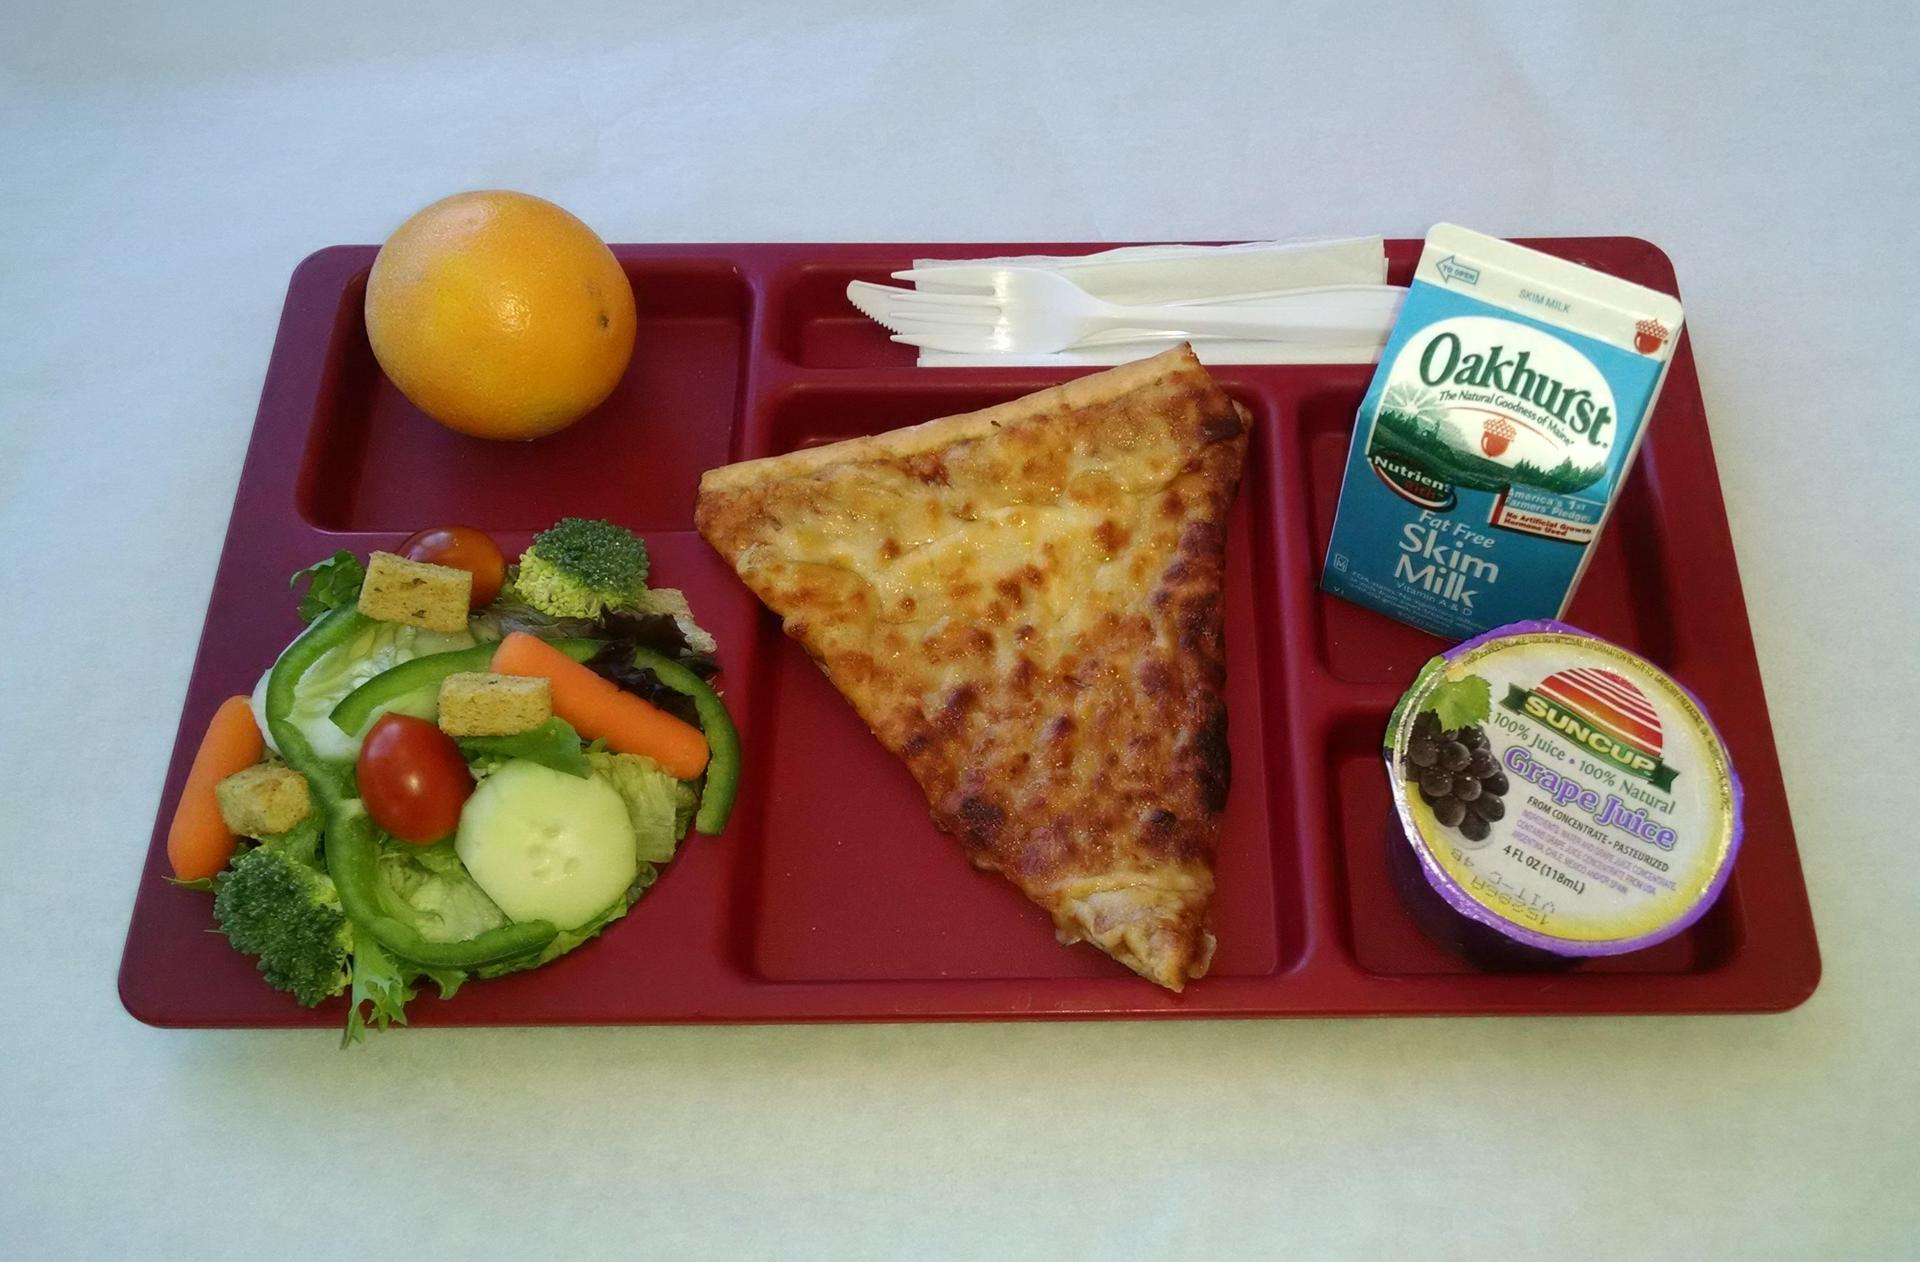 Slice of Cheese Pizza, Salad, Orange, 100% Juice and Milk